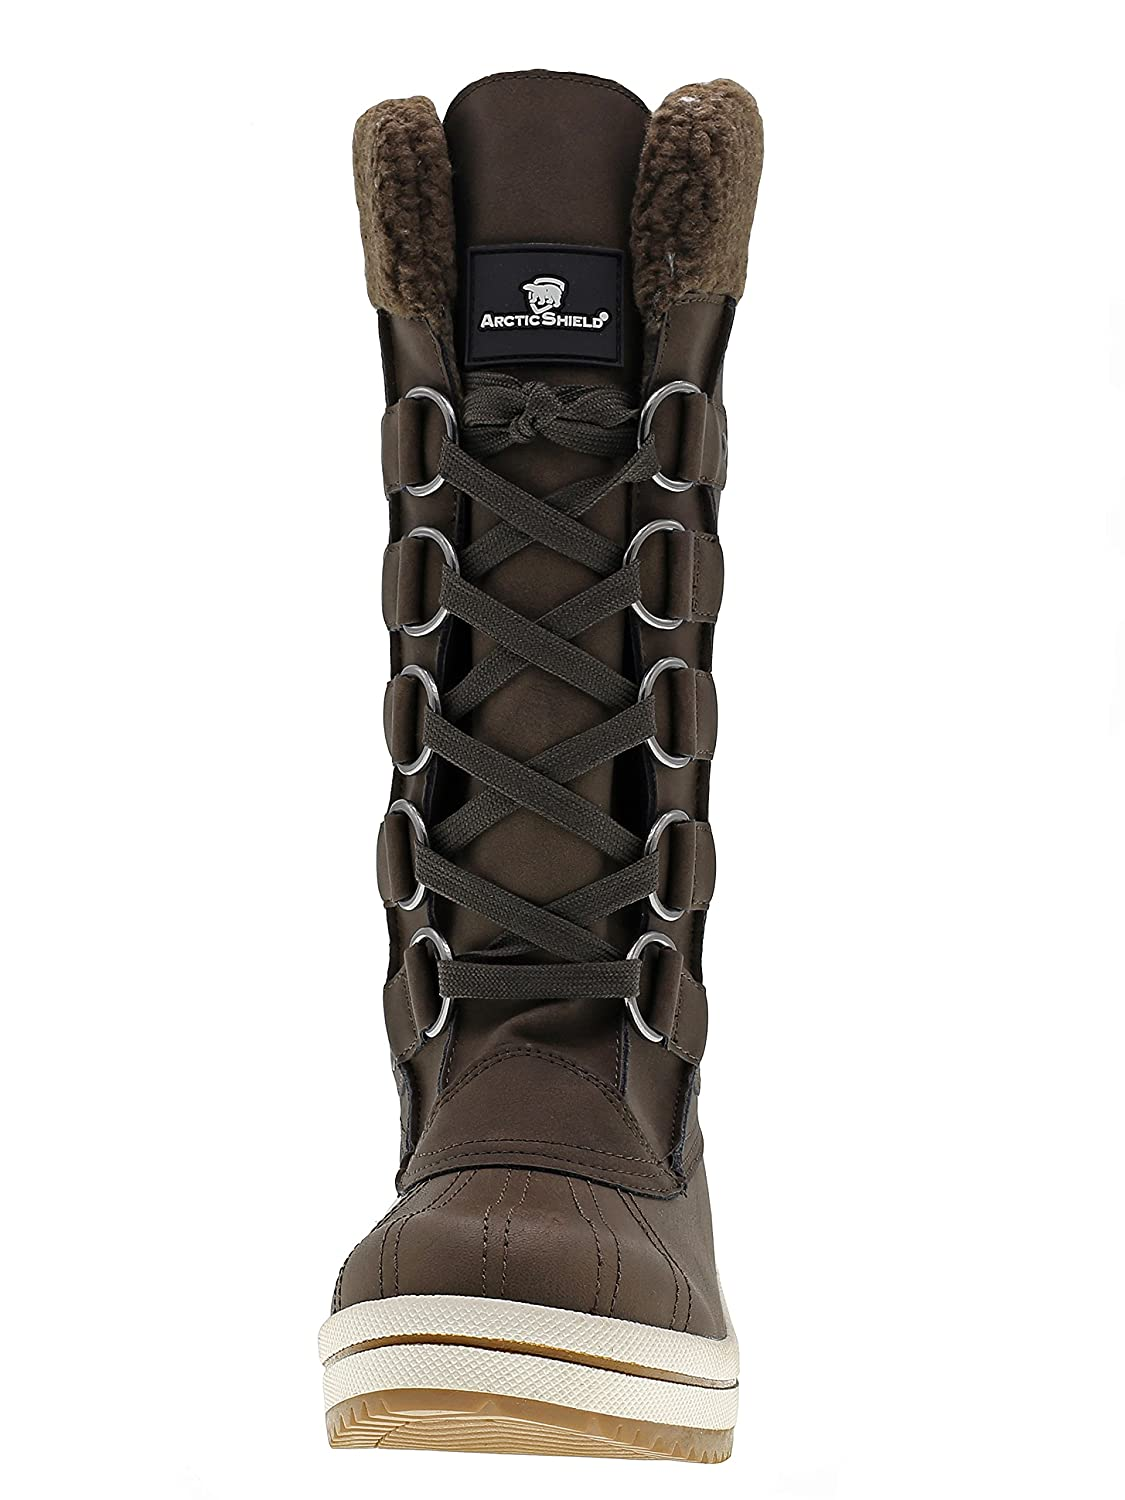 d5a51d9b72e30 Amazon.com | ArcticShield Women's Stacy Waterproof Insulated Warm  Comfortable Durable Outdoor Winter Snow Boots | Boots